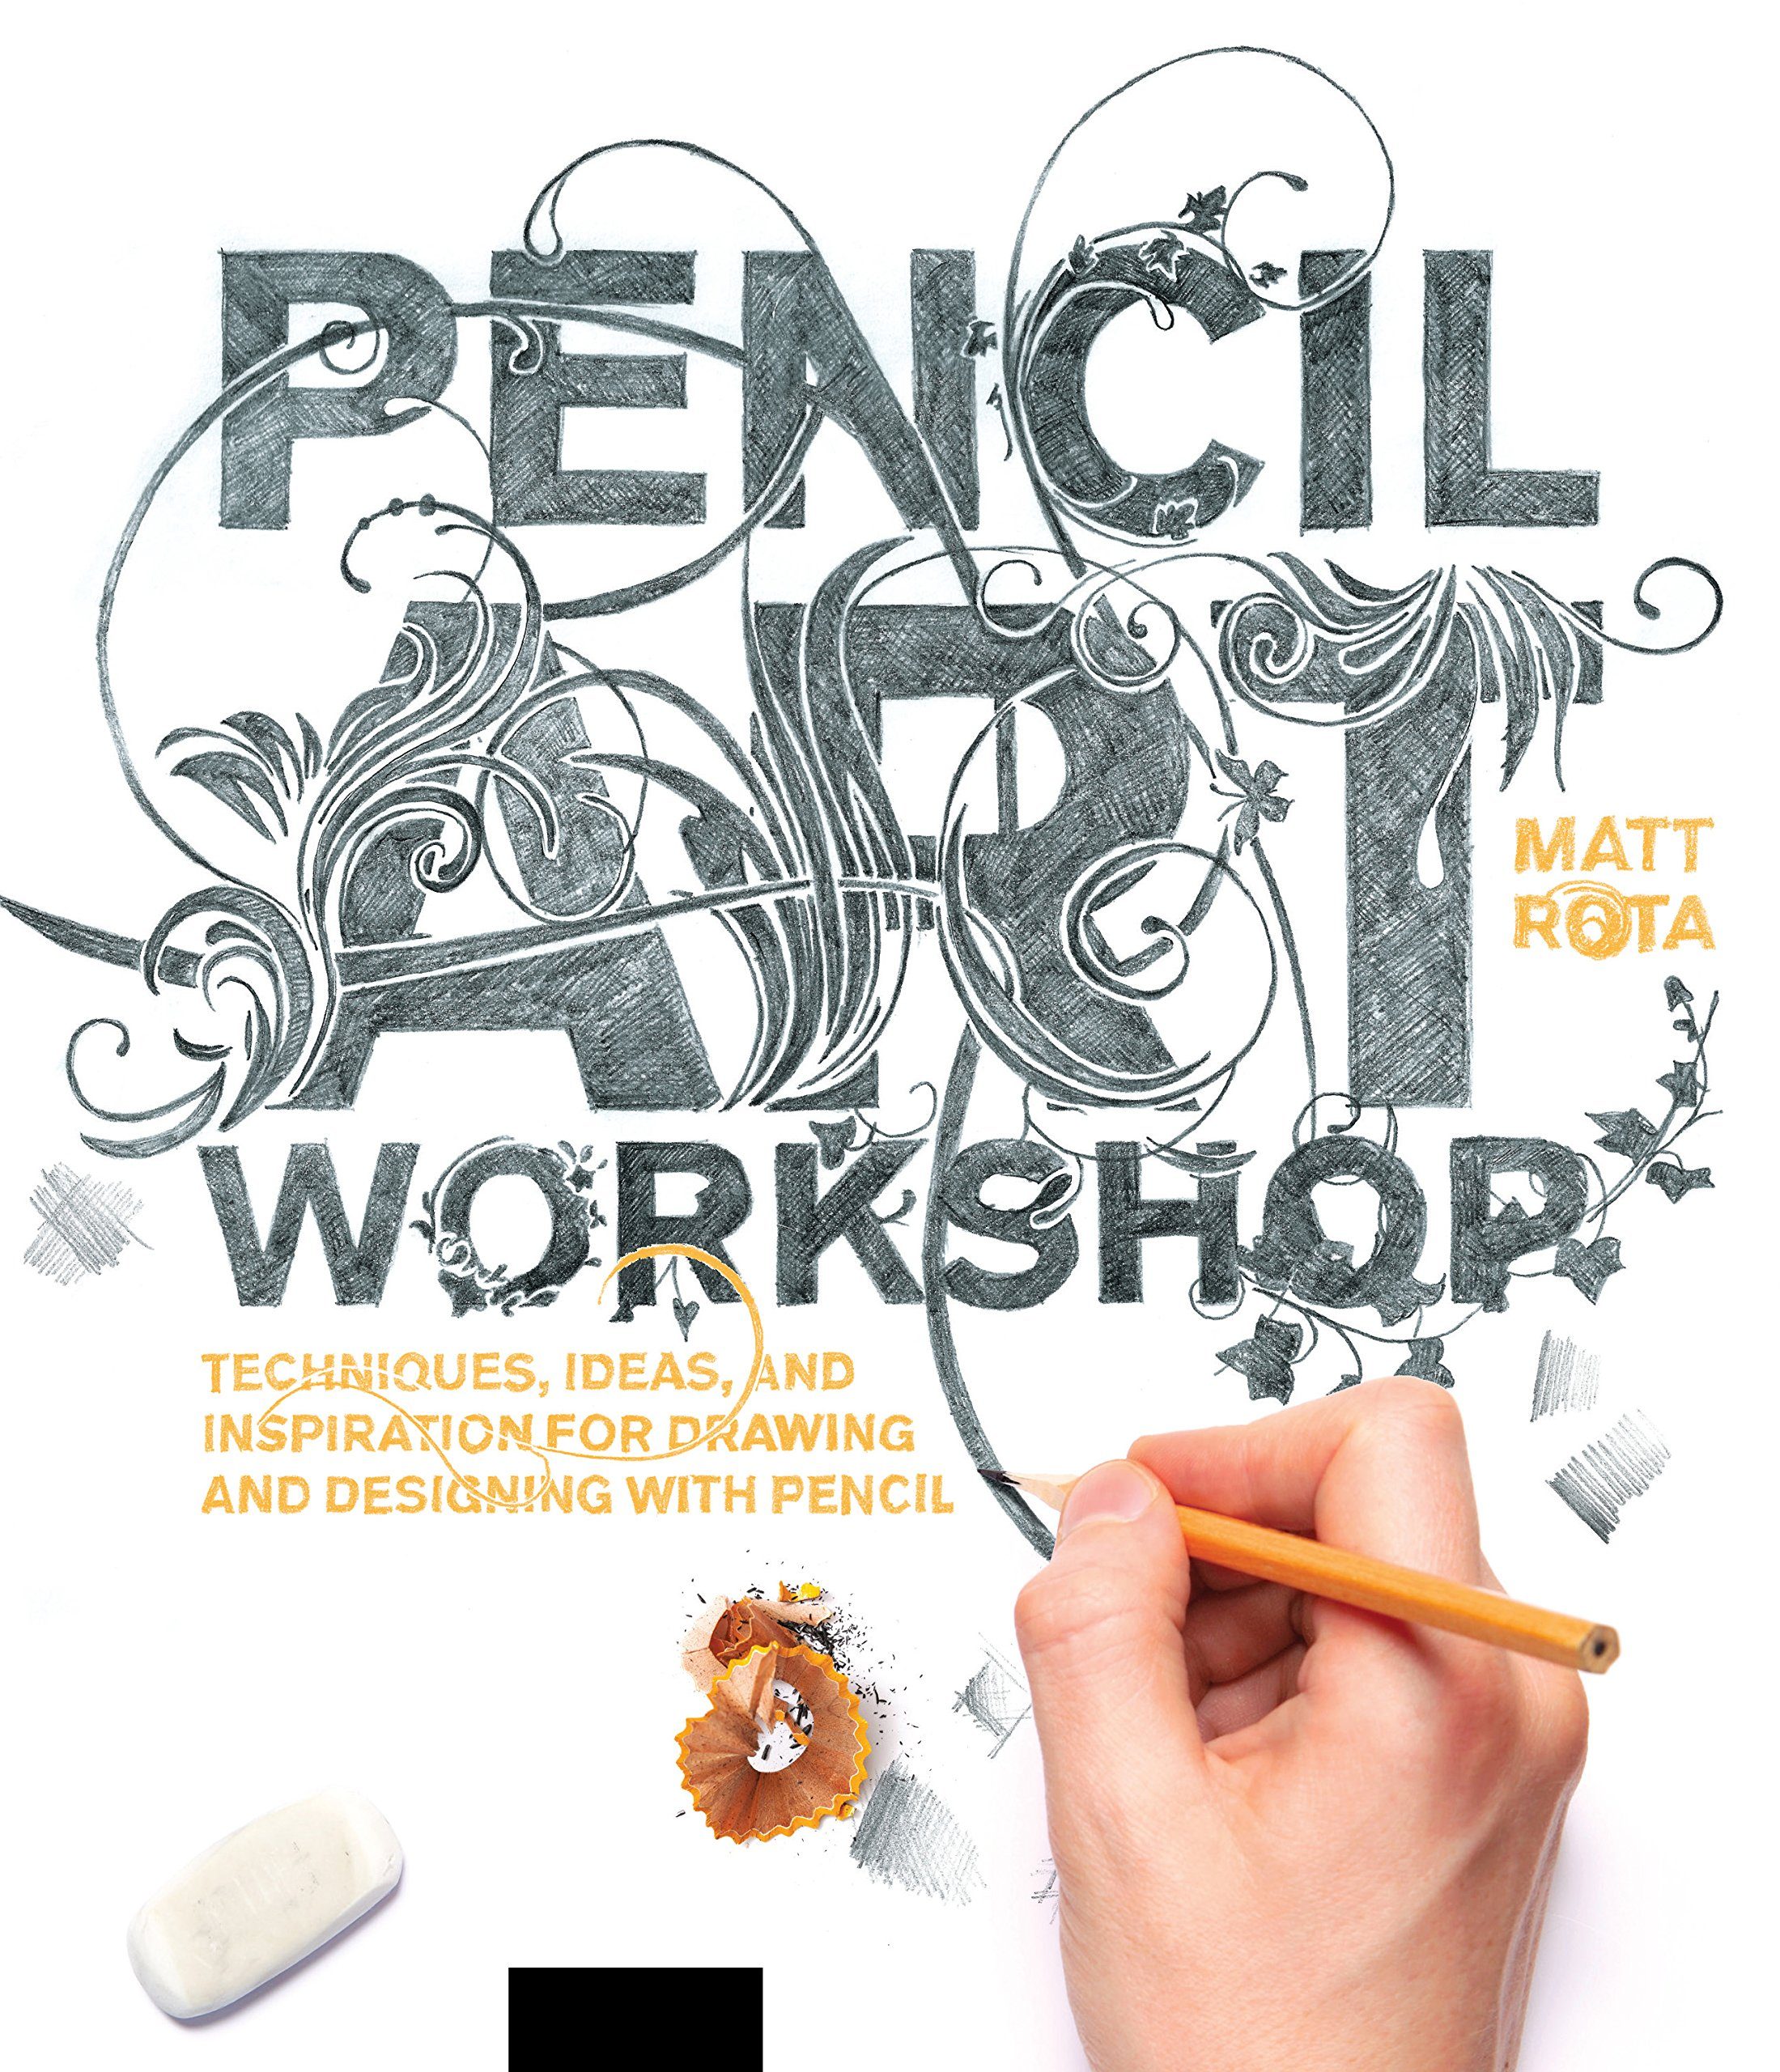 Pencil Art Workshop: Techniques, Ideas, and Inspiration for Drawing and  Designing with Pencil: Matt Rota: 9781631592690: Amazon.com: Books